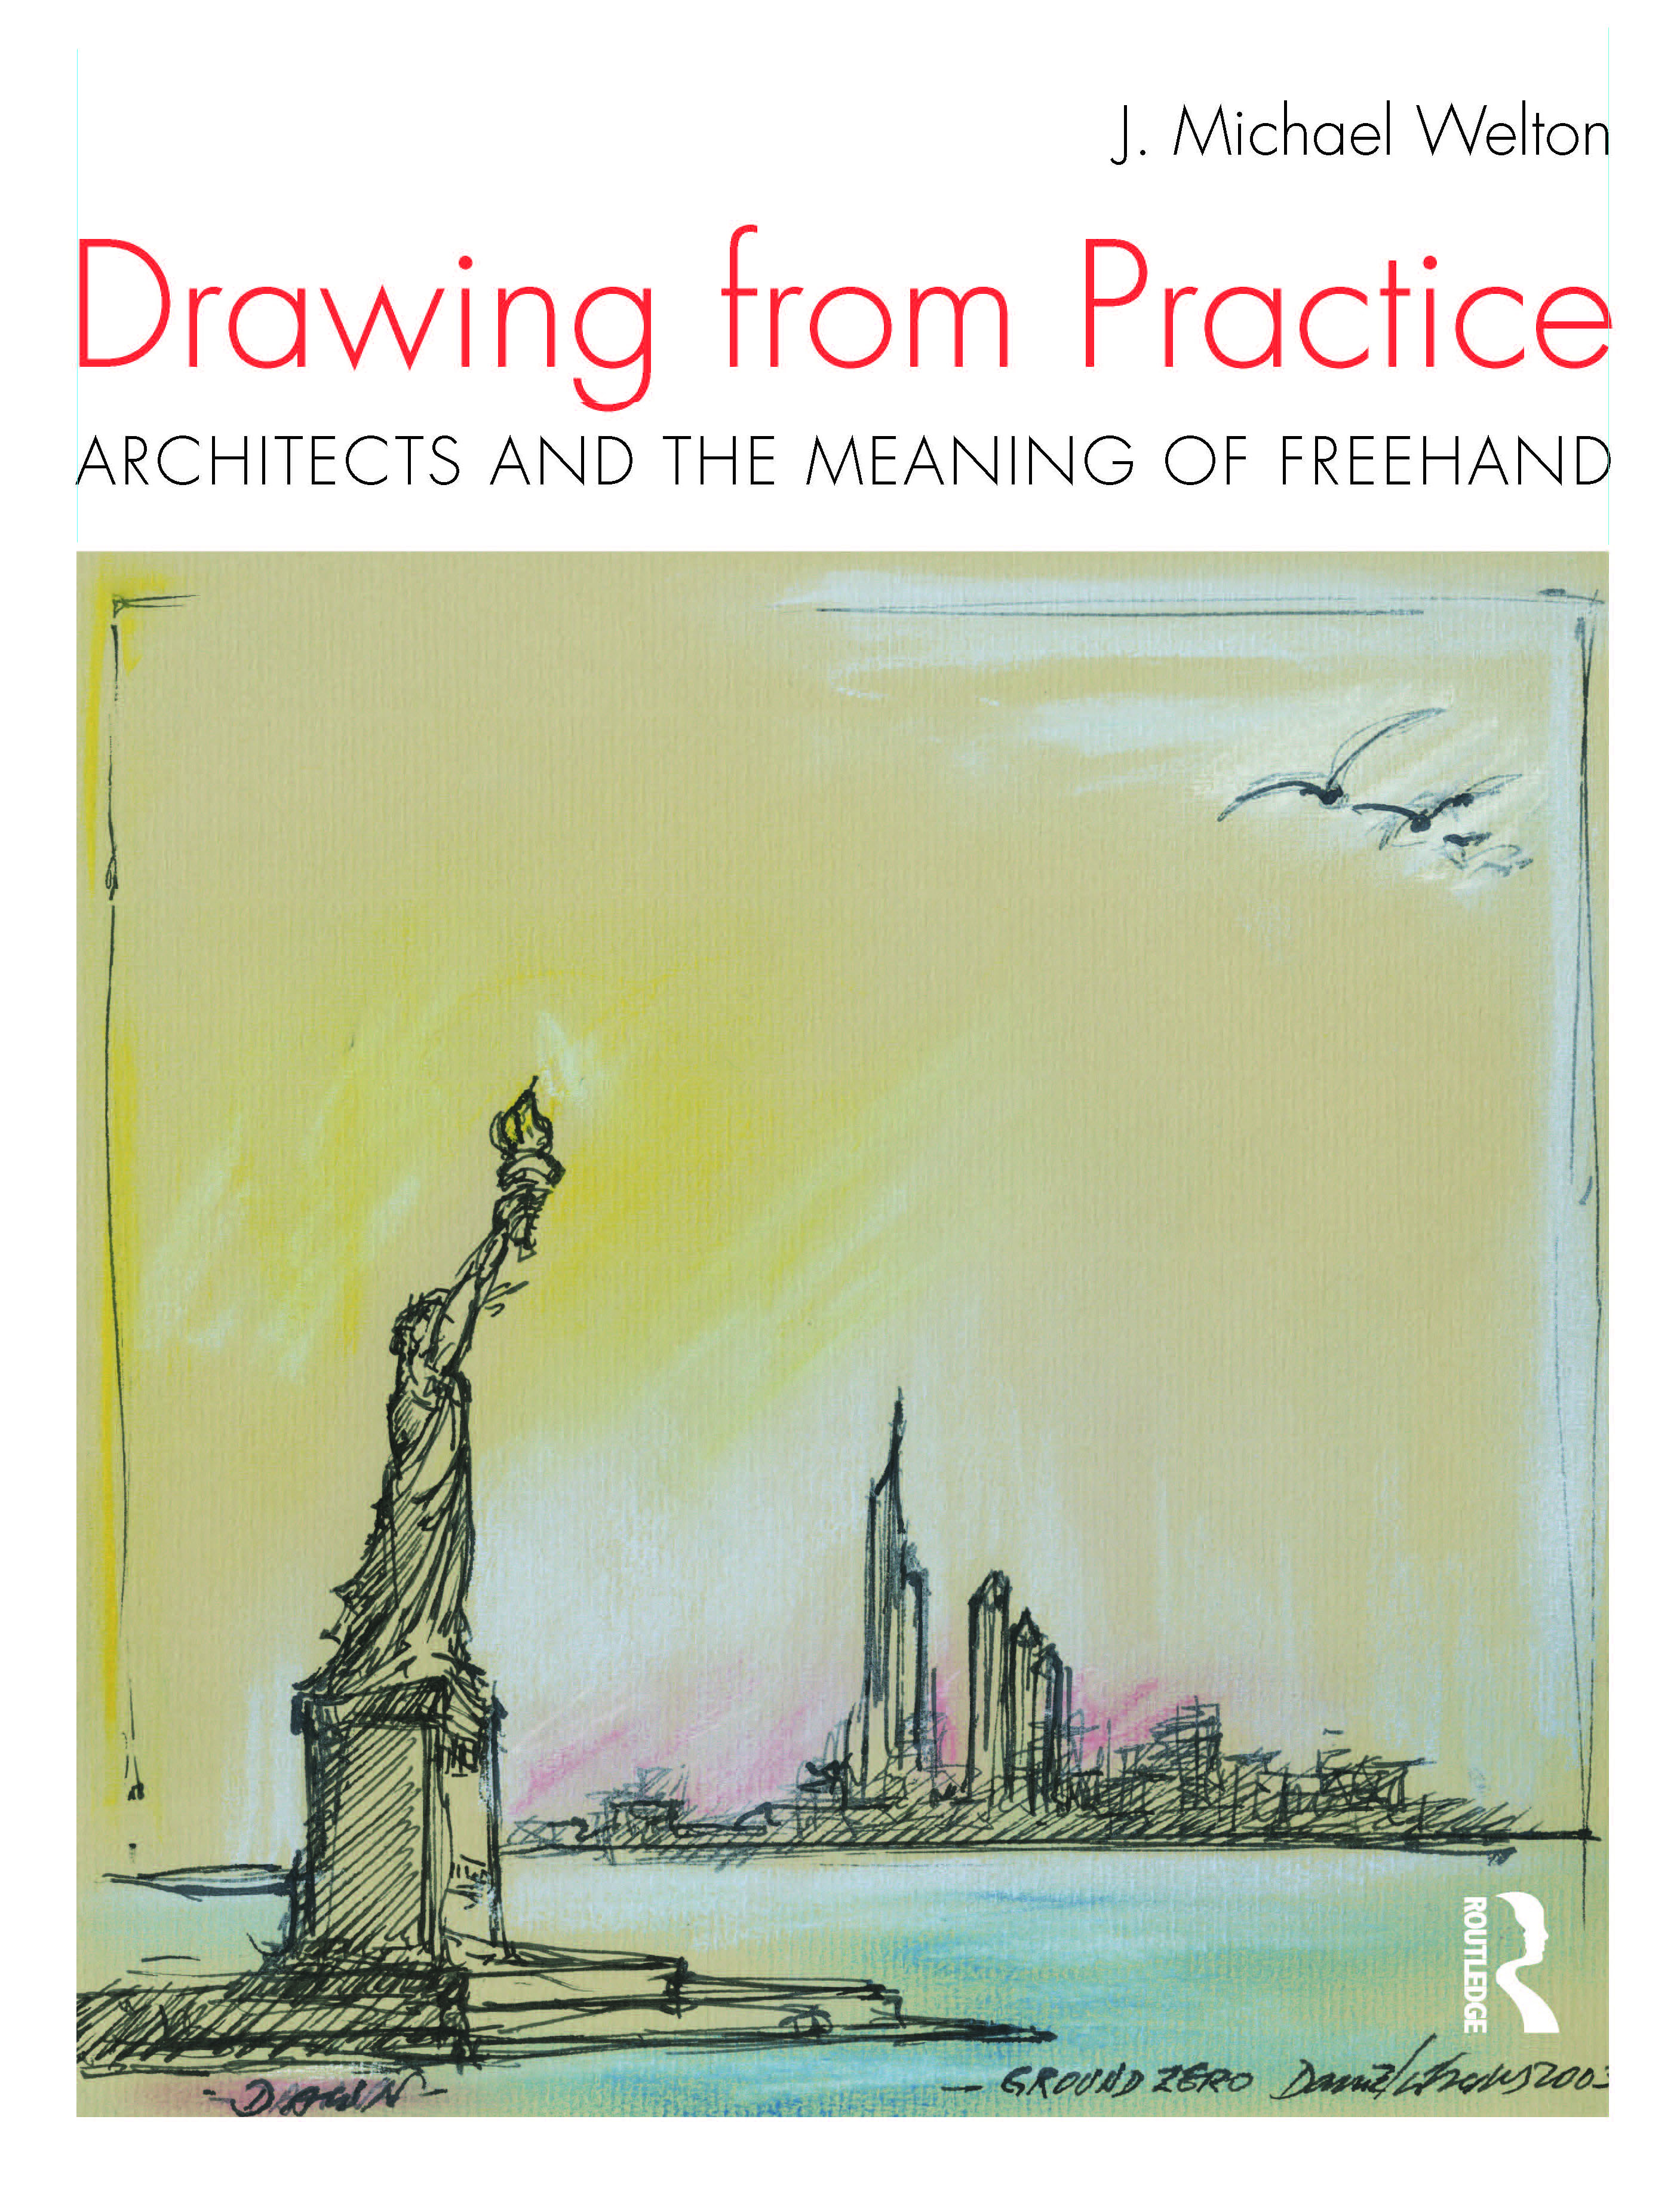 Drawing from Practice: Architects and the Meaning of Freehand, J. Michael Welton